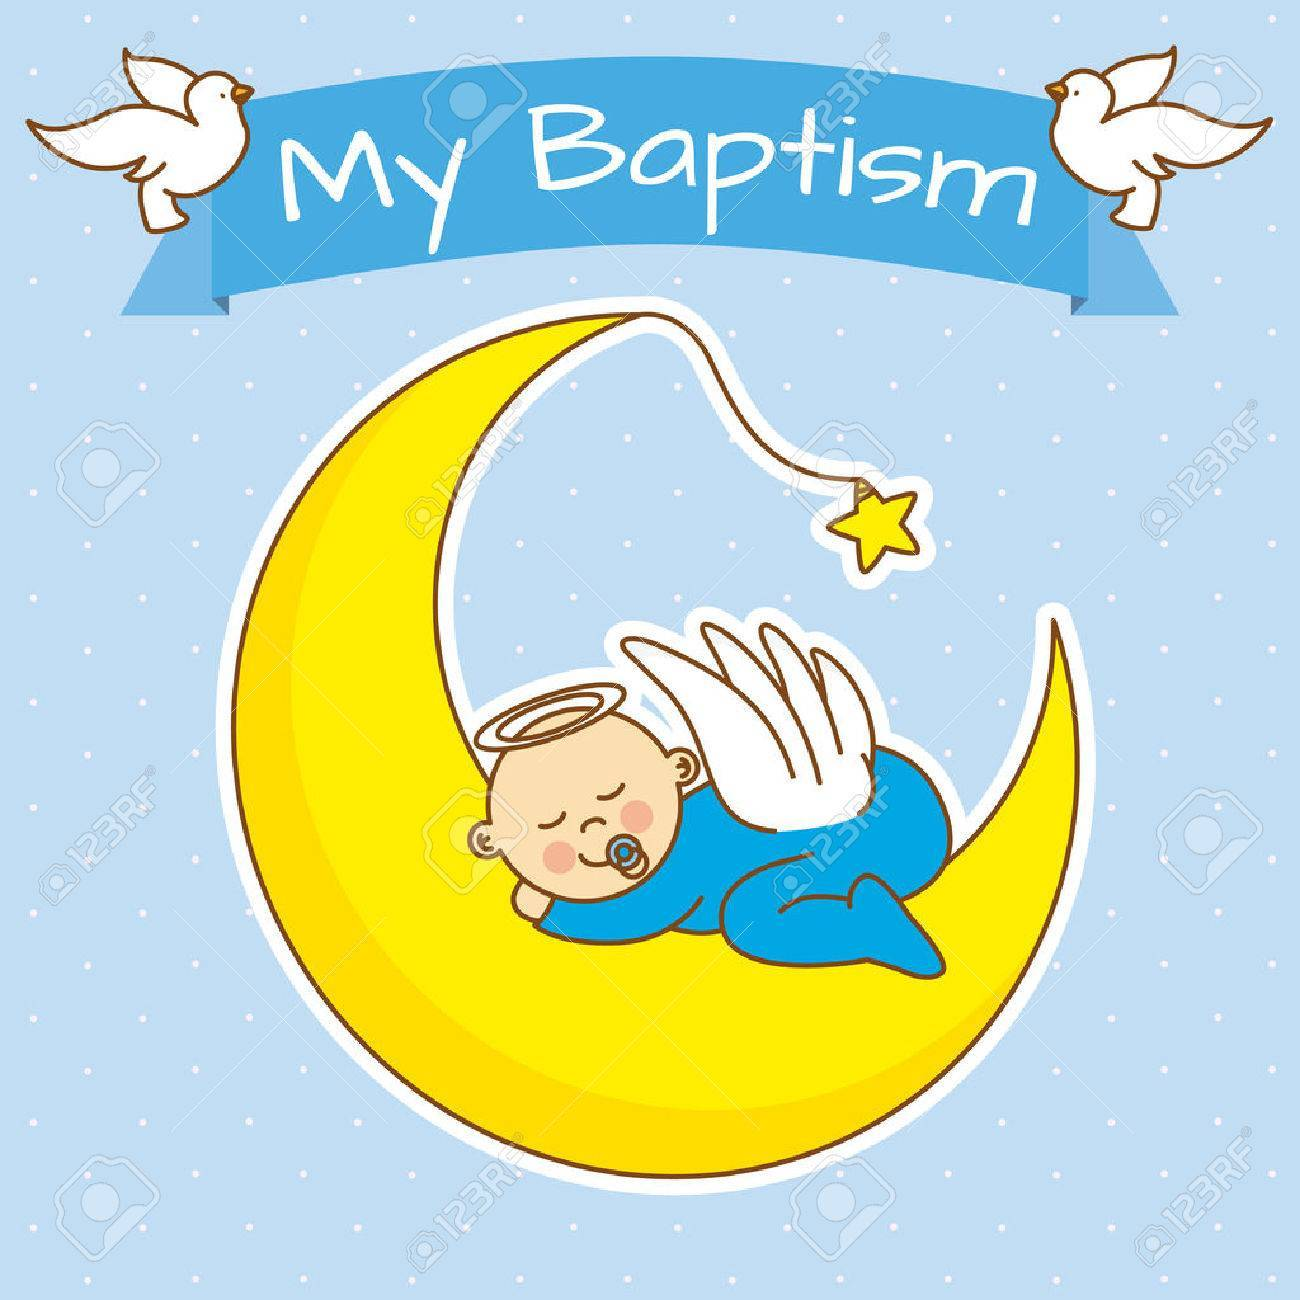 Free christening clipart download Free baby christening clipart 8 » Clipart Portal download